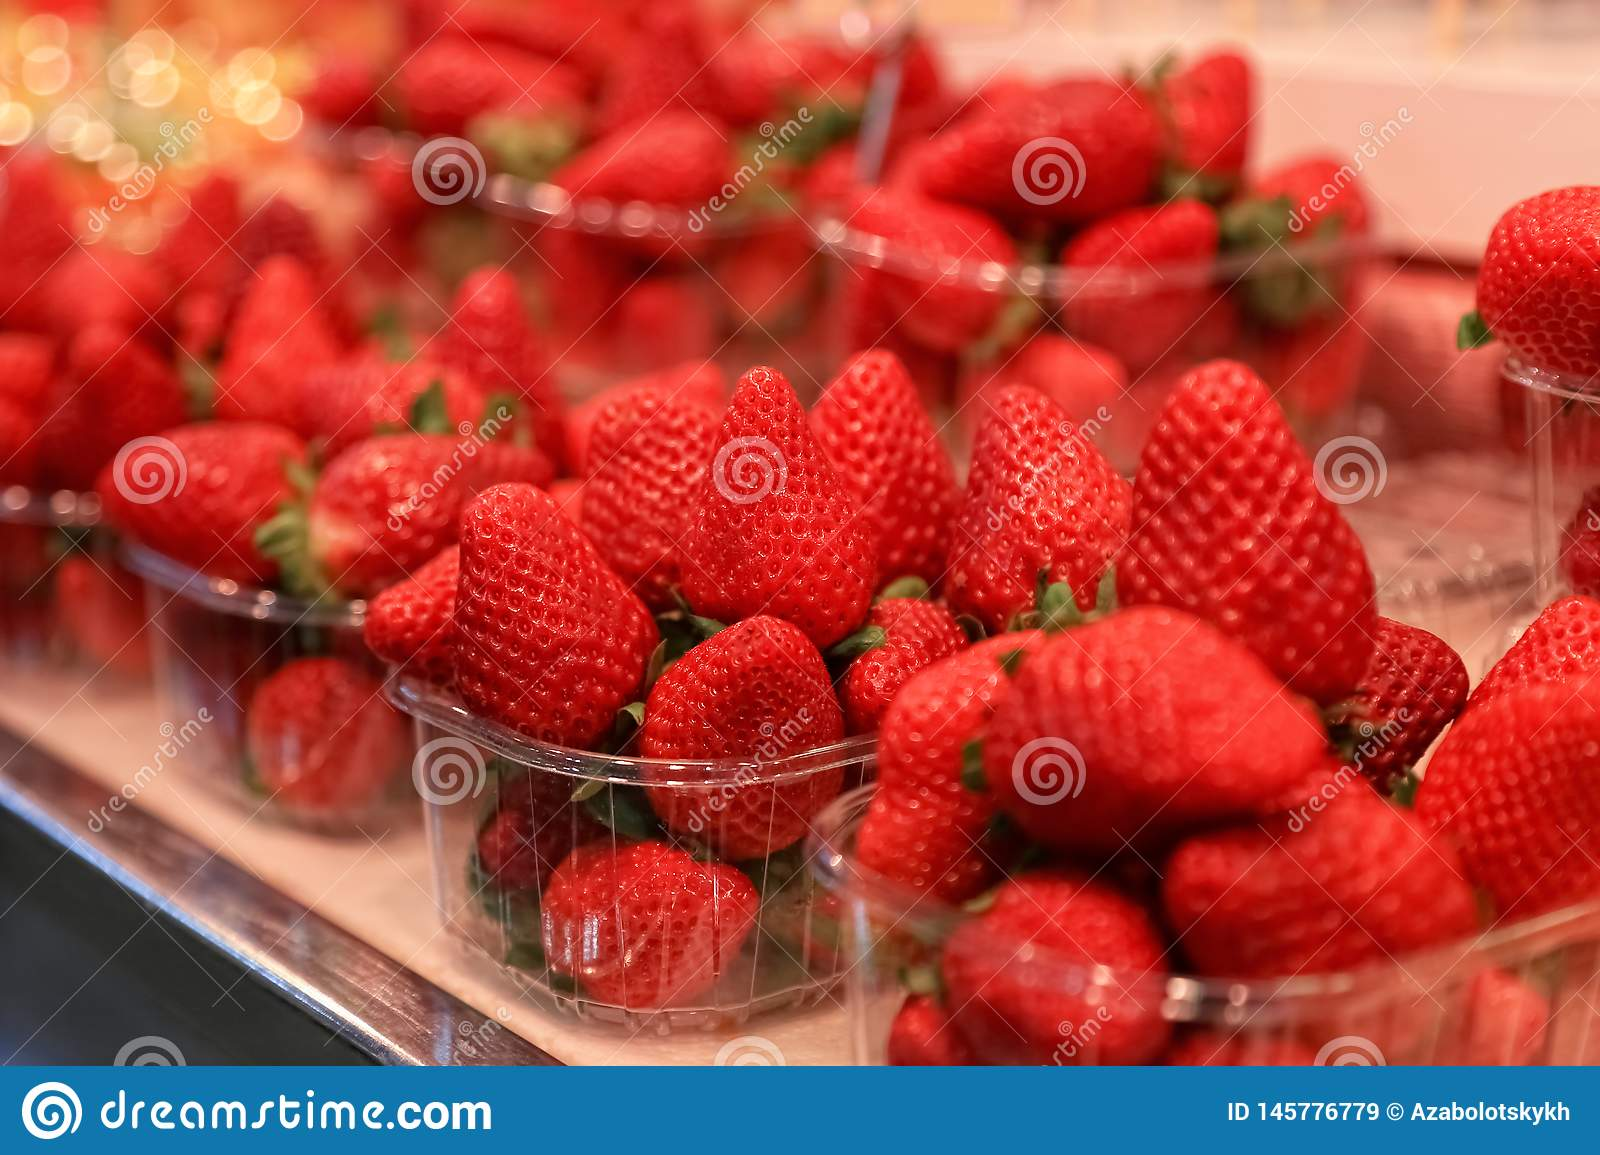 Red strawberries in plastic containers